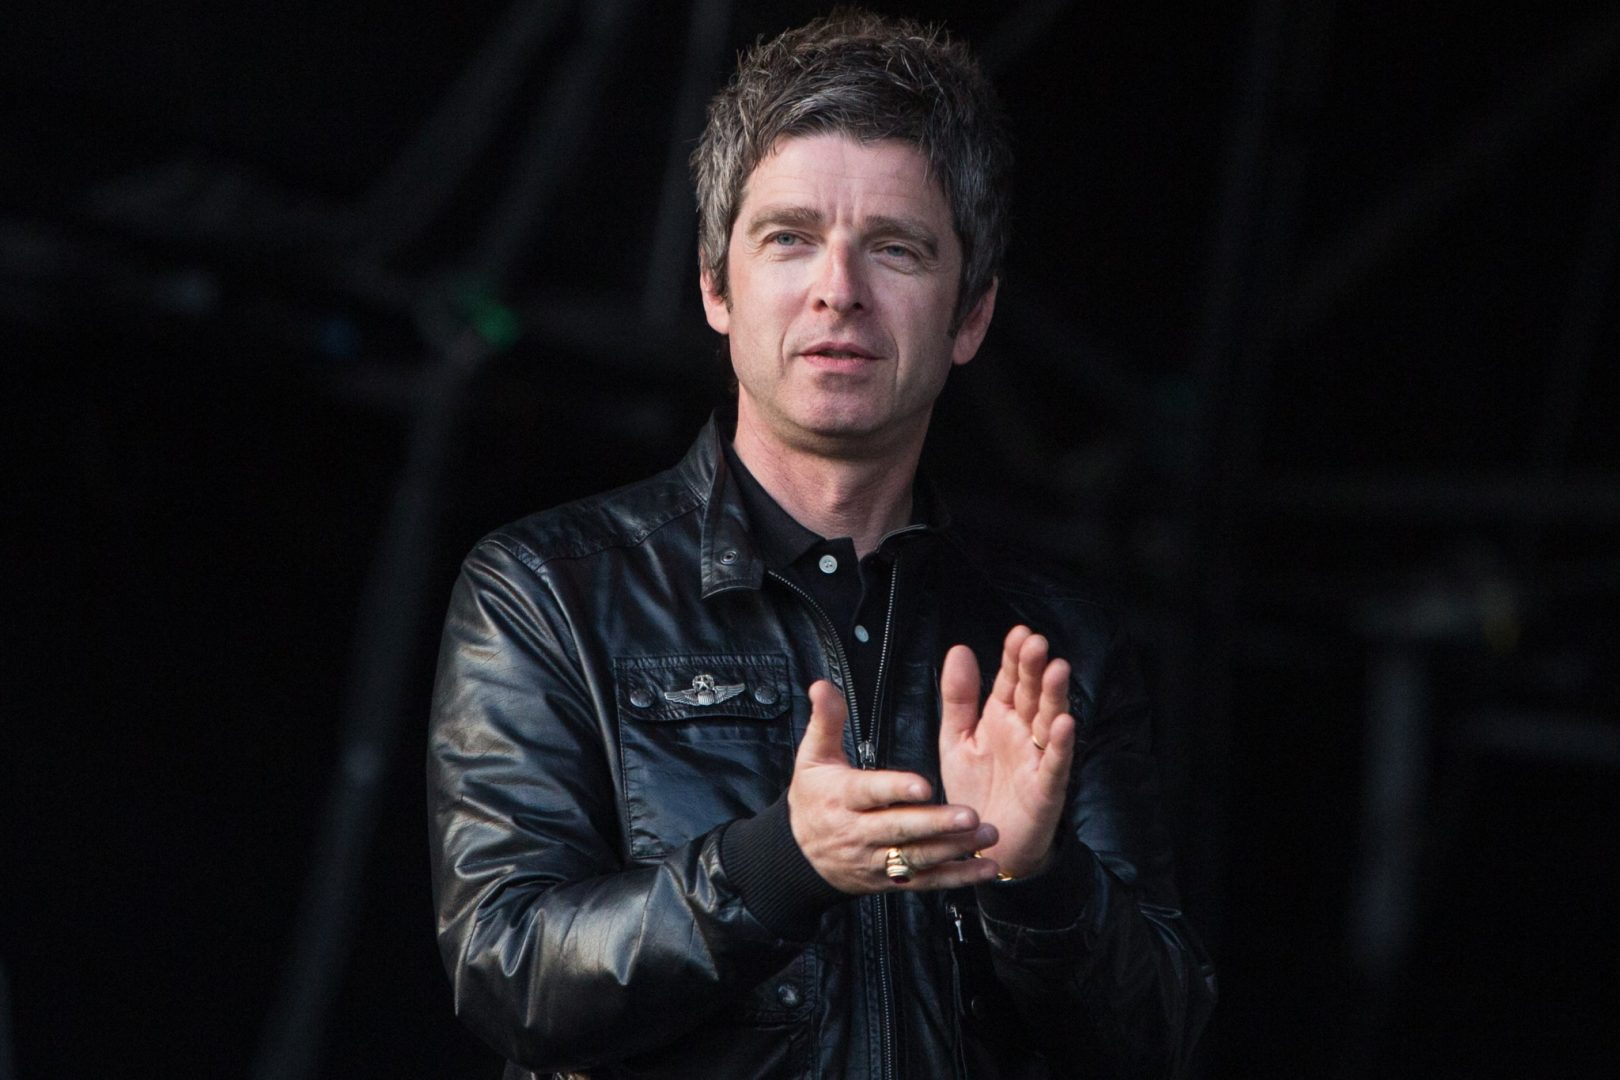 Is Noel Gallagher gearing up for a dance track?